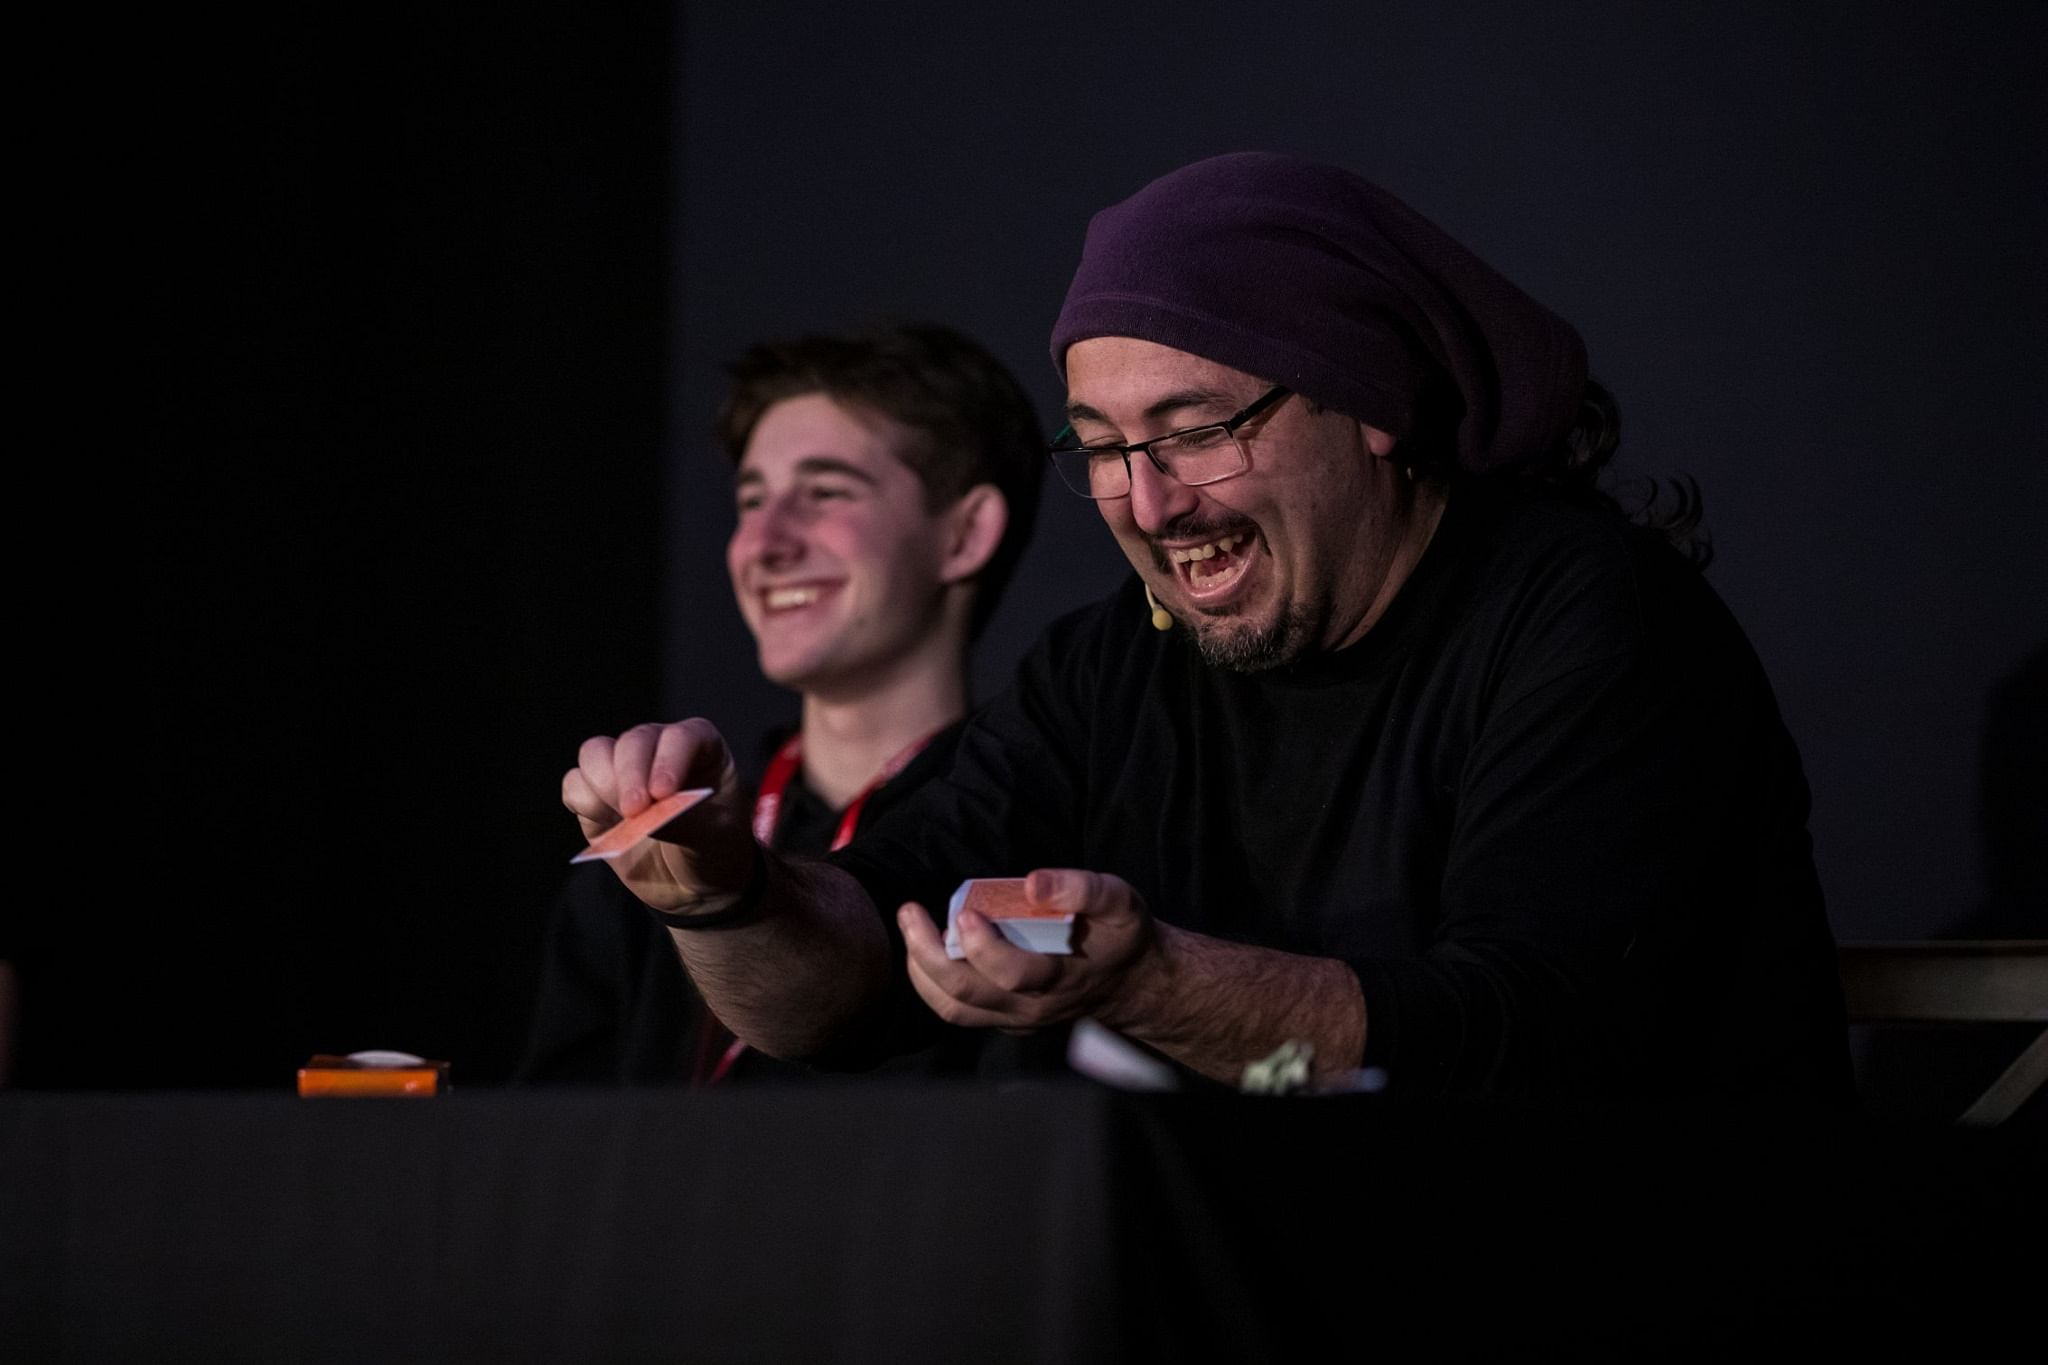 Magician Dani DaOrtiz and a spectator with huge smiles across their faces during a fun and energetic card trick